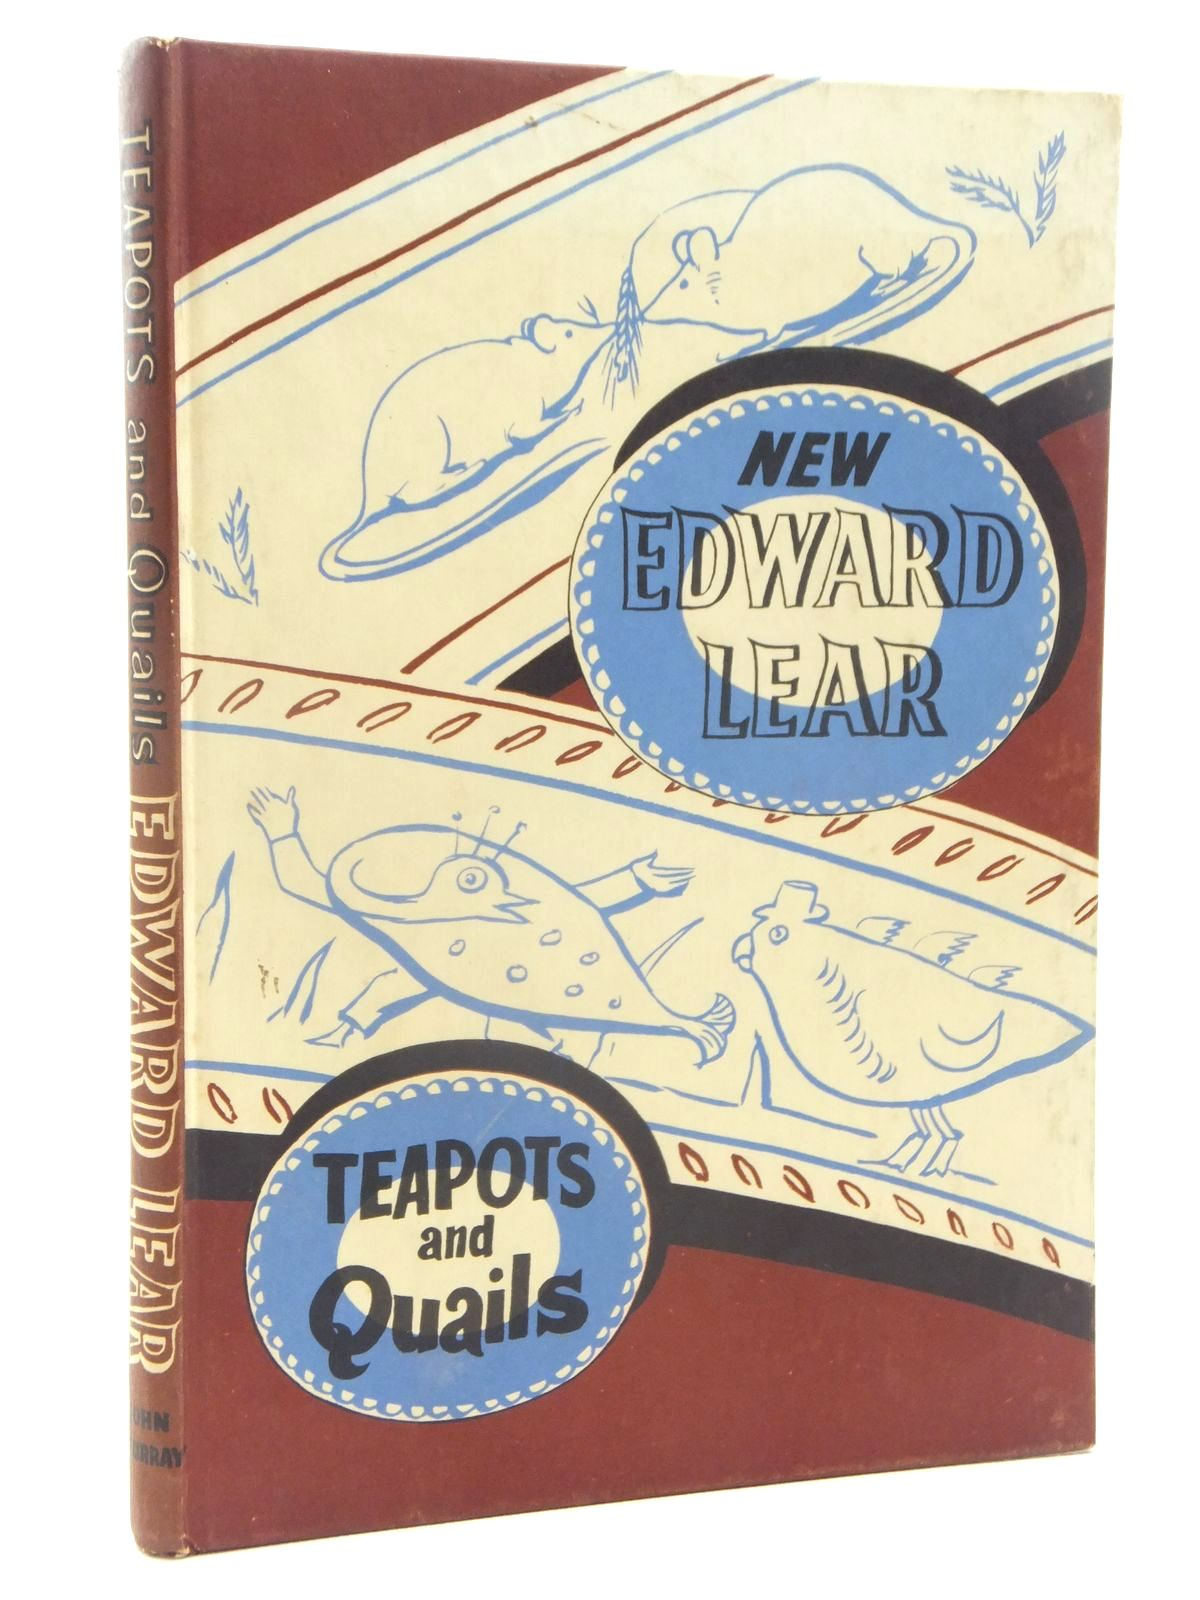 Photo of TEAPOTS AND QUAILS AND OTHER NEW NONSENSES written by Lear, Edward illustrated by Lear, Edward published by John Murray (STOCK CODE: 2123967)  for sale by Stella & Rose's Books